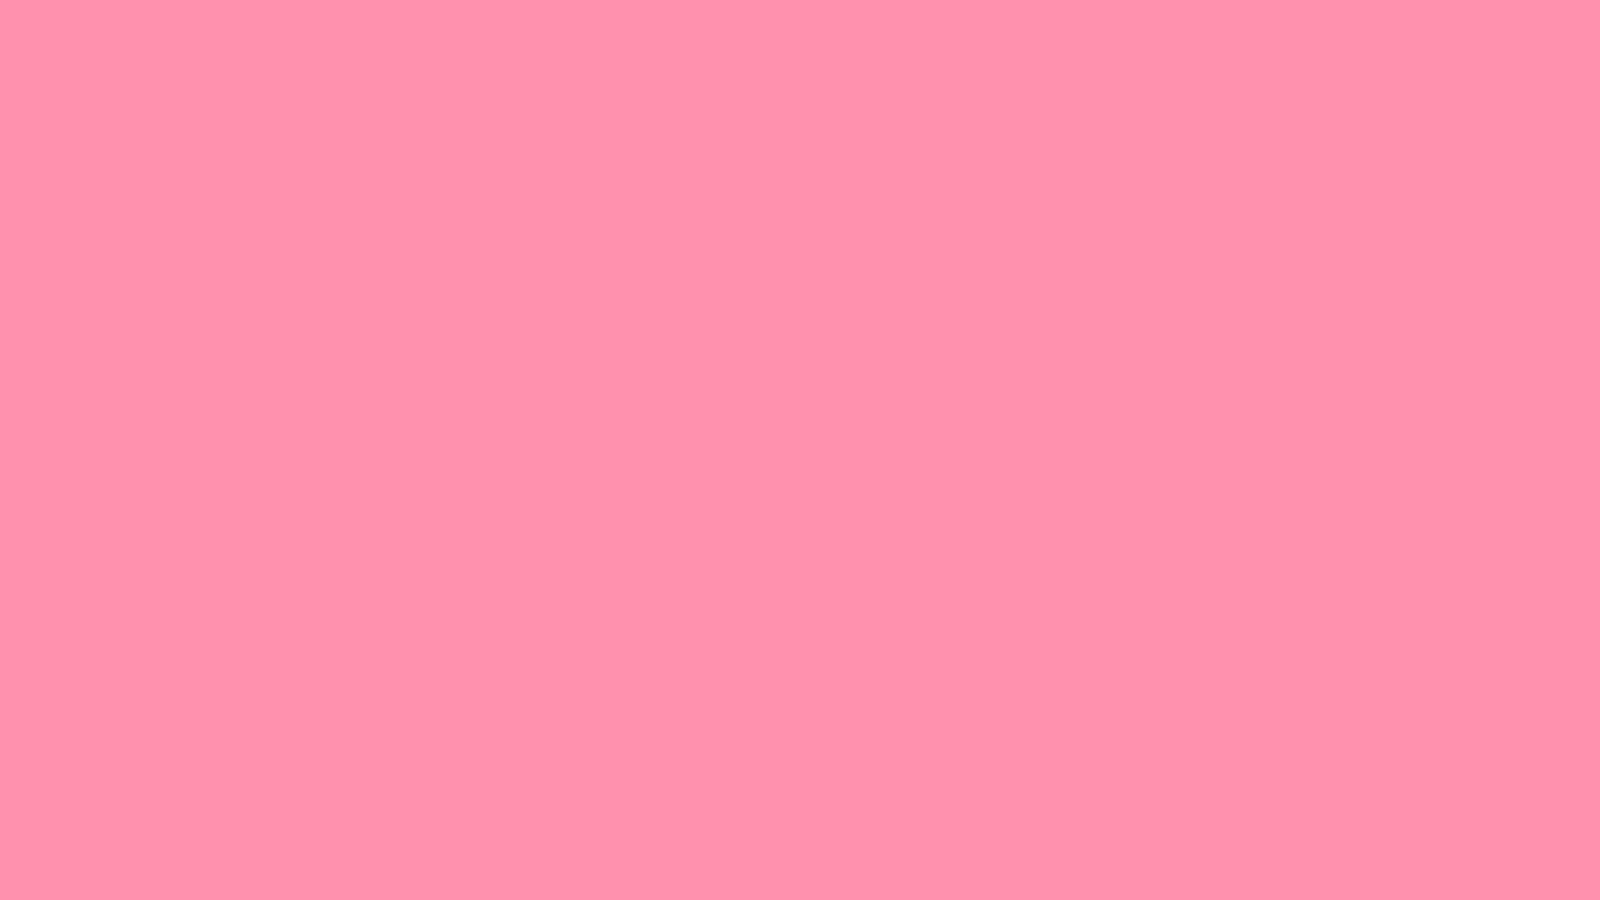 1600x900 Baker-Miller Pink Solid Color Background